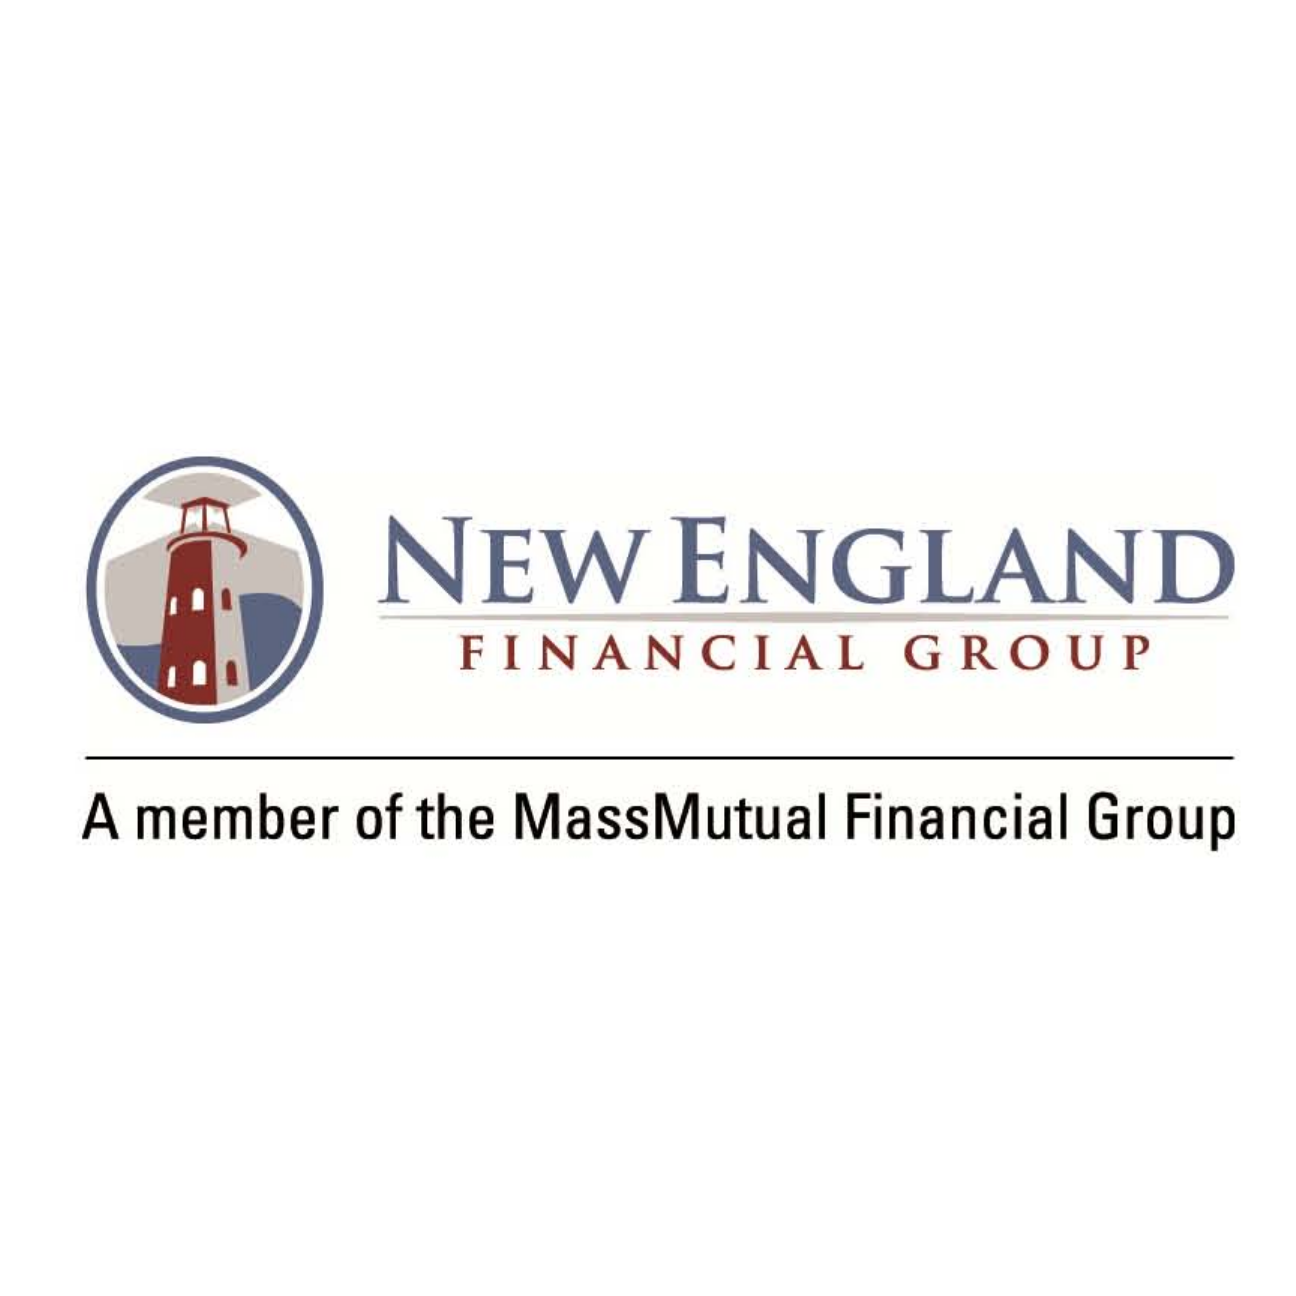 New England Financial Group